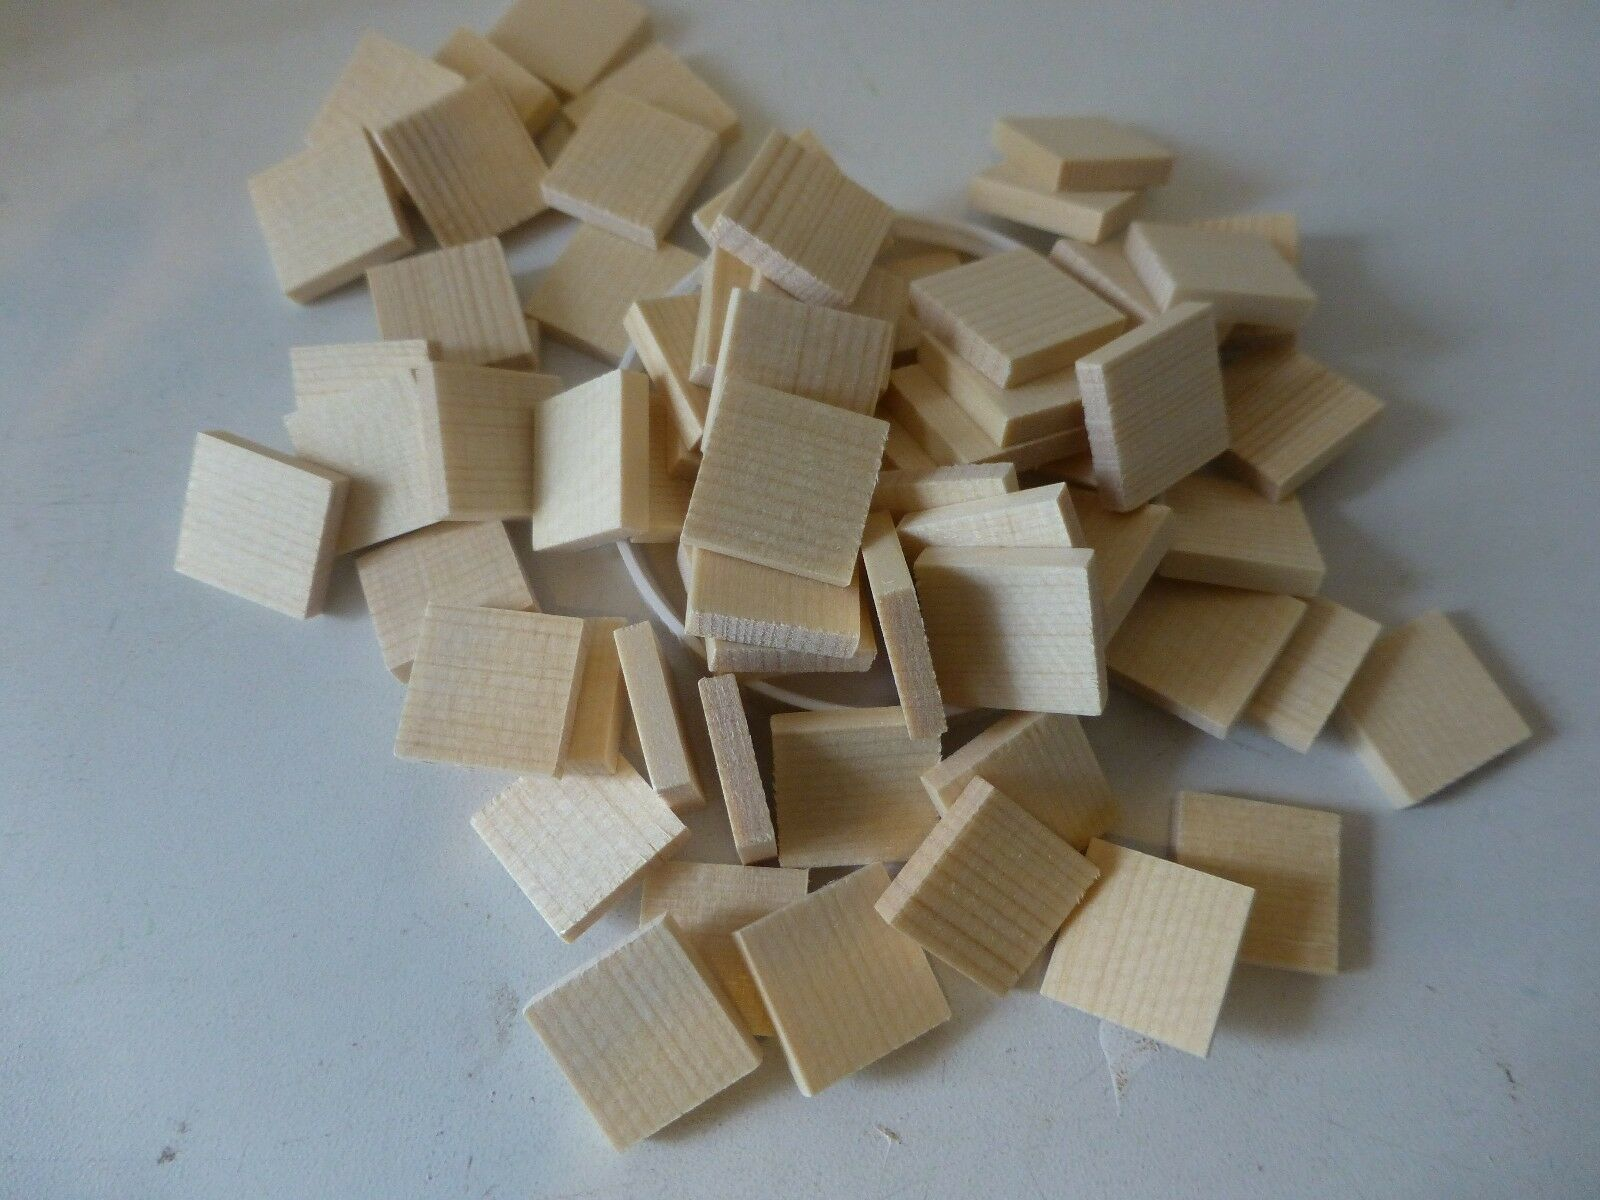 19X19X4MM PRE-CUT SQUARE SPRUCE 50 STRING INSTRUMENT REPAIR CLEATS FROM UK!